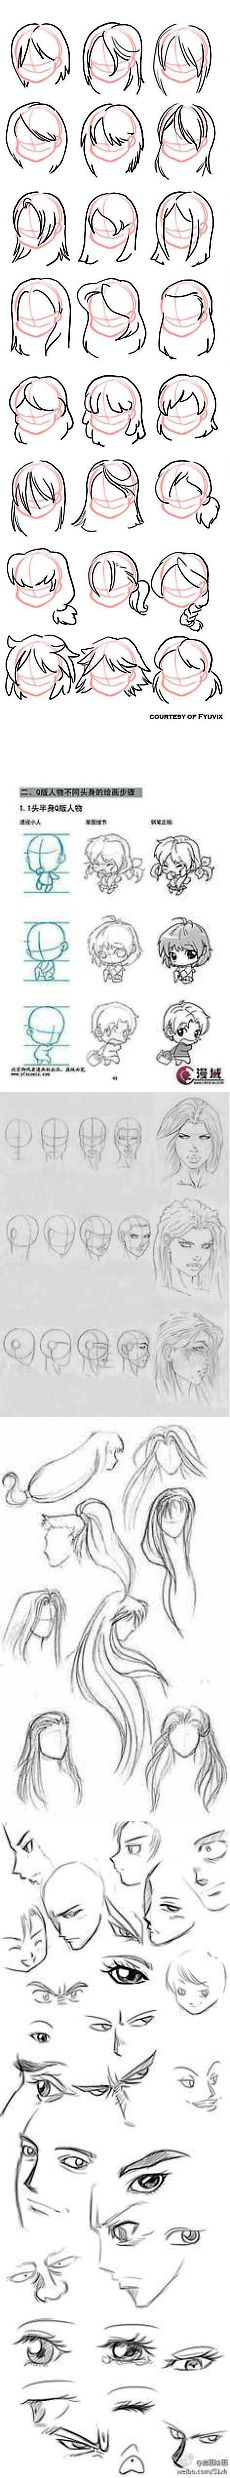 How to draw Hairstyles | aprendemos a dibujar